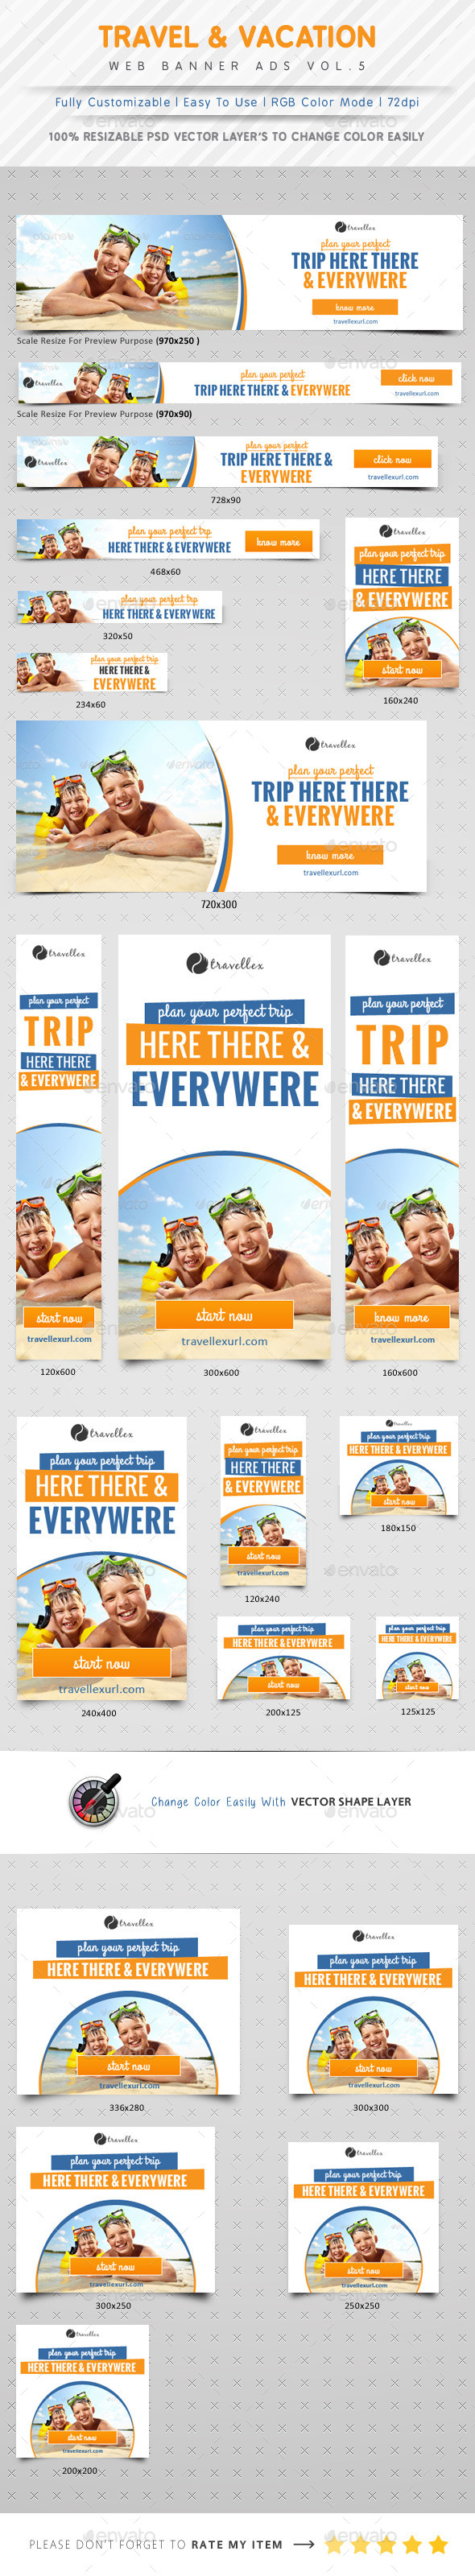 Vacation & Travel Agency Ads Vol.5 - Banners & Ads Web Elements